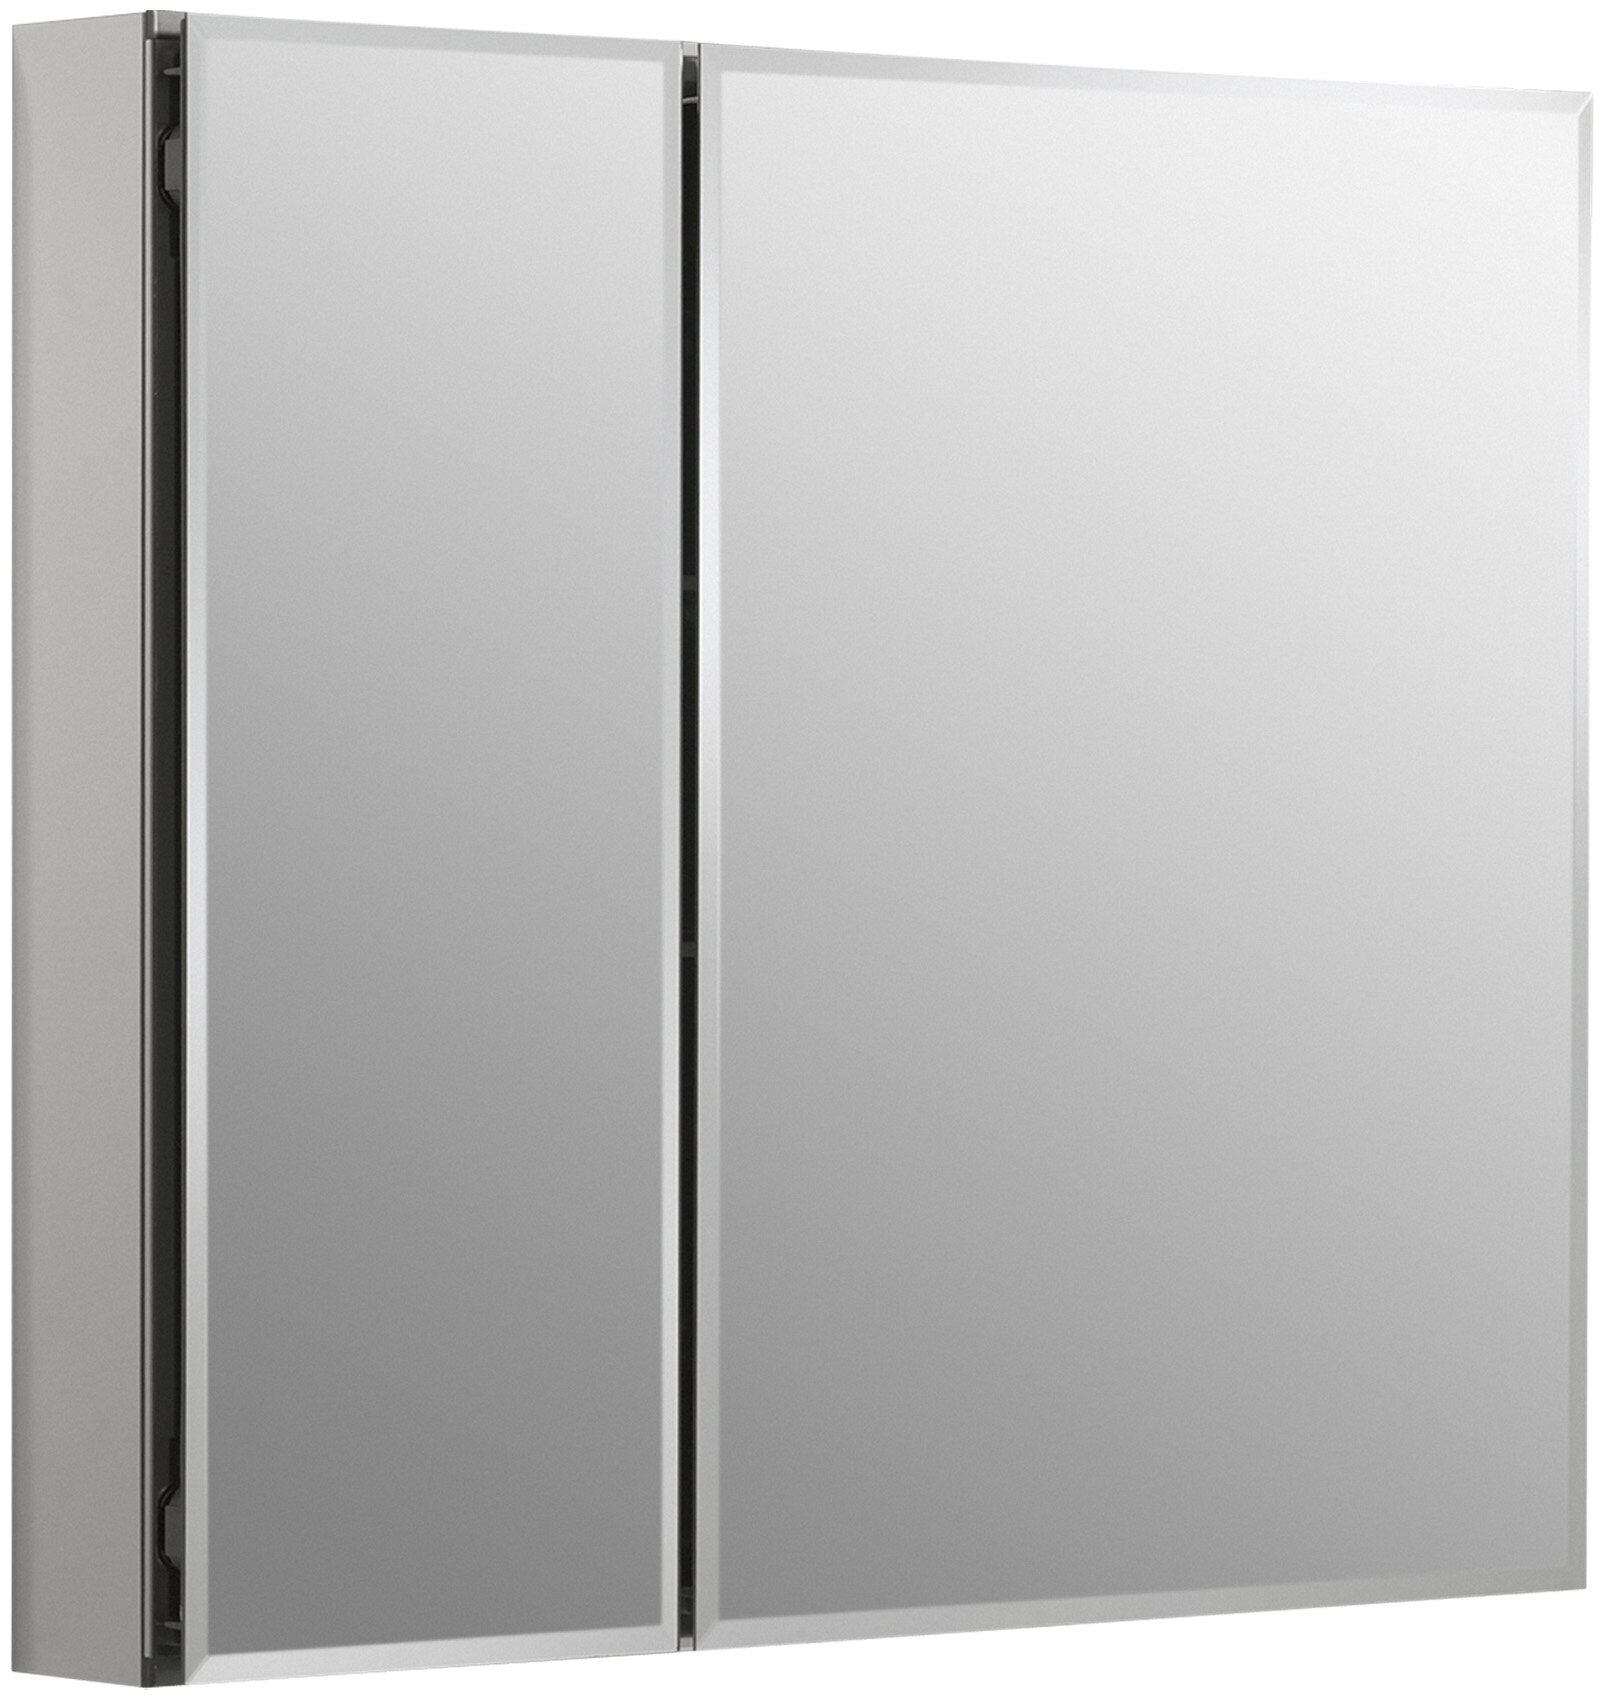 30  x 26  Aluminum Two-Door Medicine Cabinet with Mirrored Doors Beveled Edges u0026 Reviews | AllModern & 30